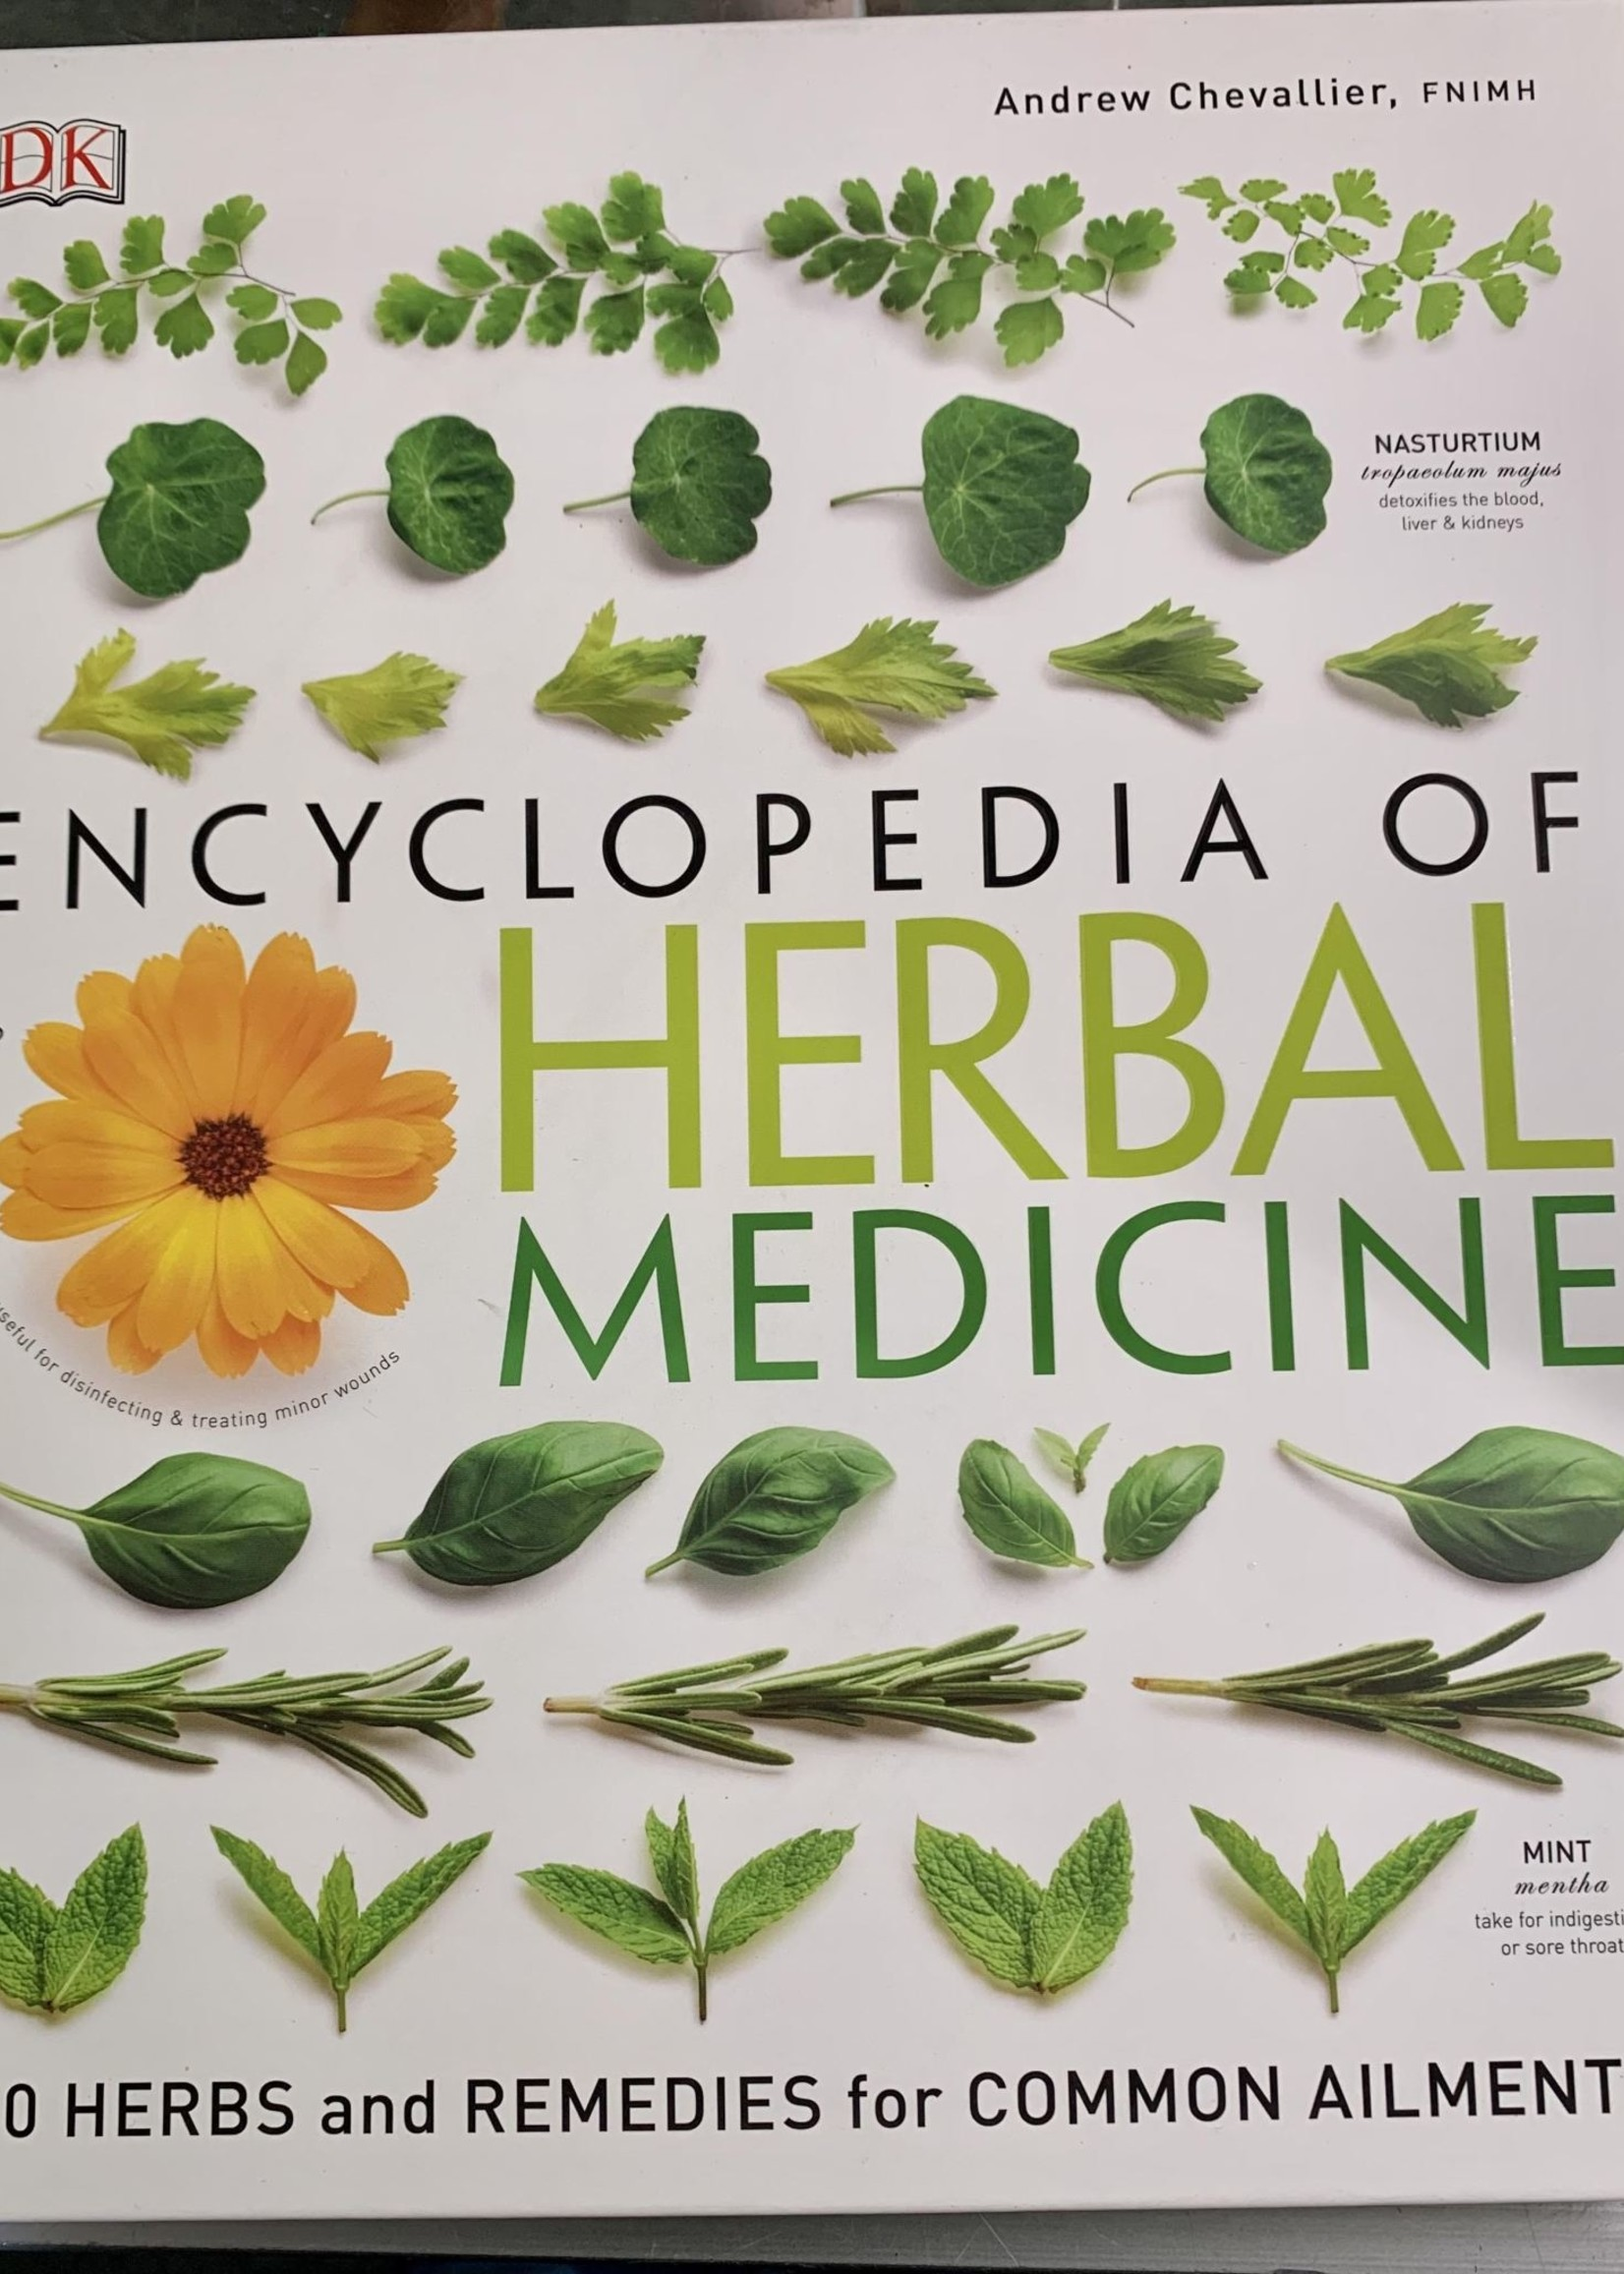 Encyclopedia of Herbal Medicine 550 HERBS AND REMEDIES FOR COMMON AILMENTS By ANDREW CHEVALLIER